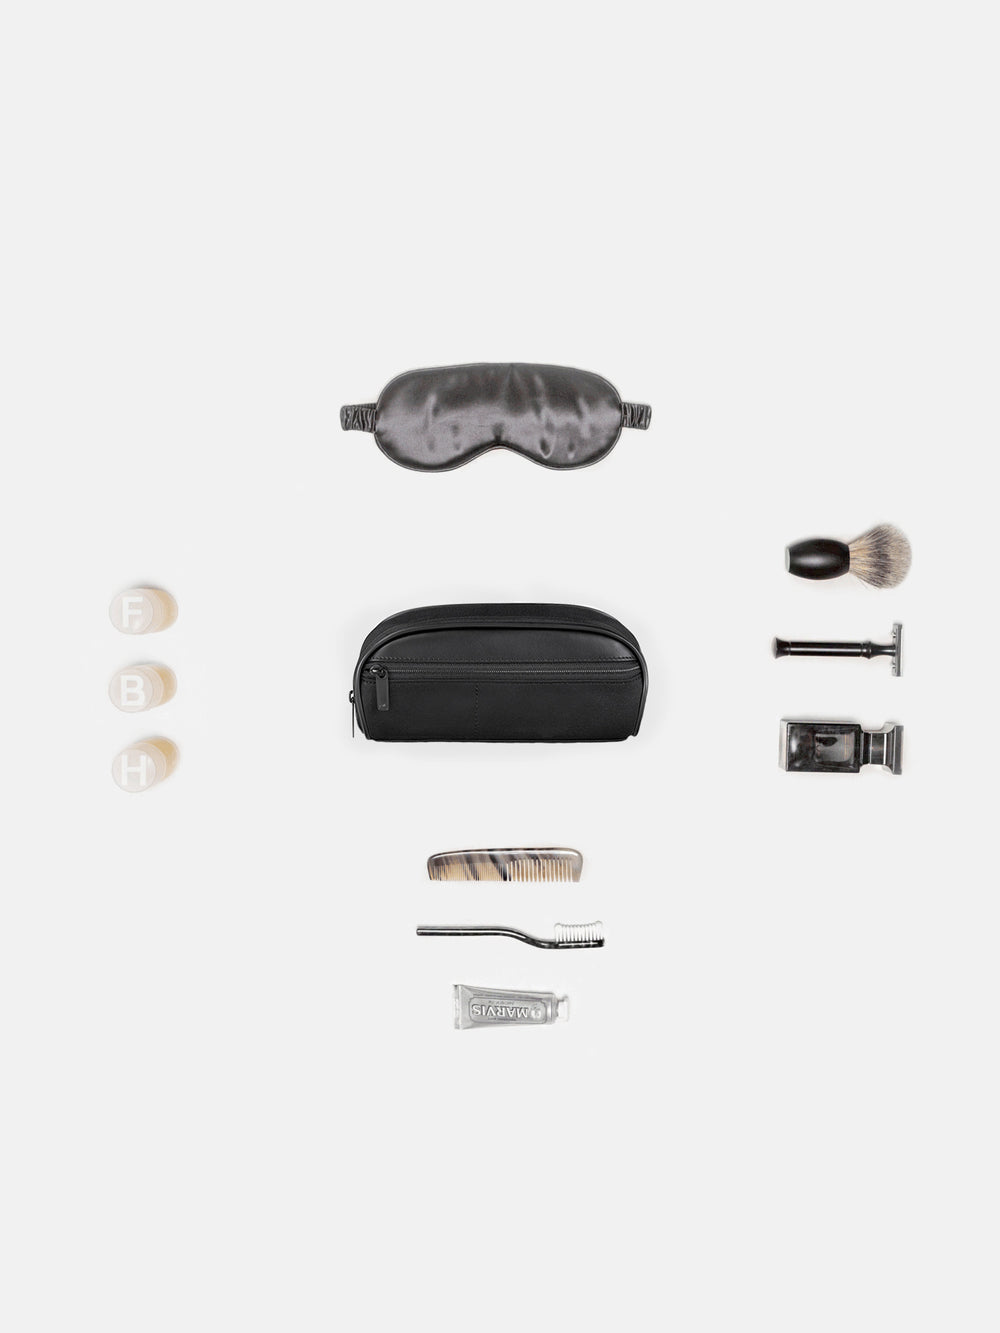 legacy dopp kit with accessories